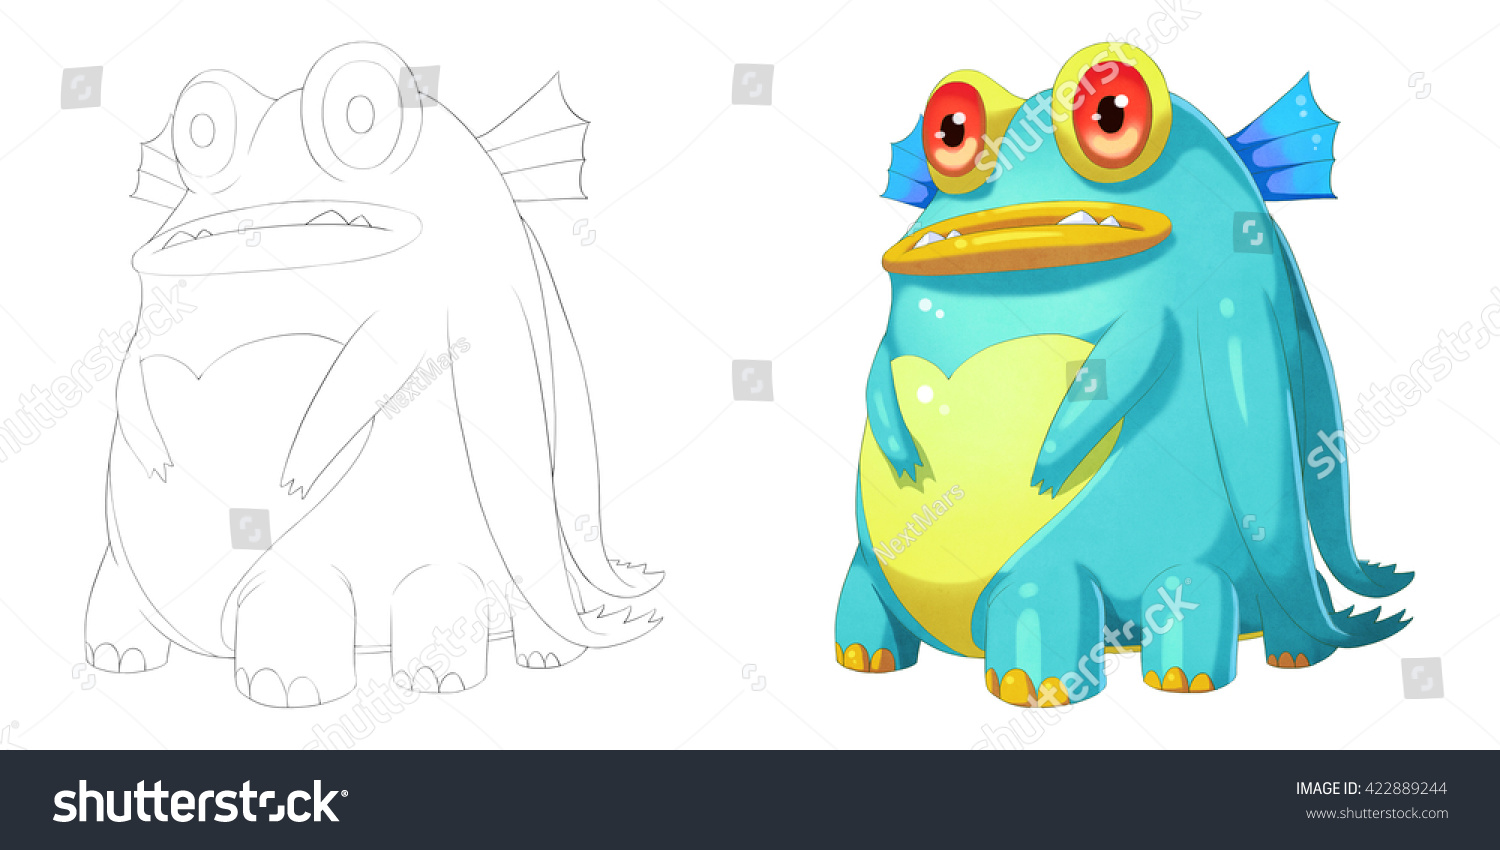 Creature And Character Design Book : Big belly fat fish creature coloring stock illustration